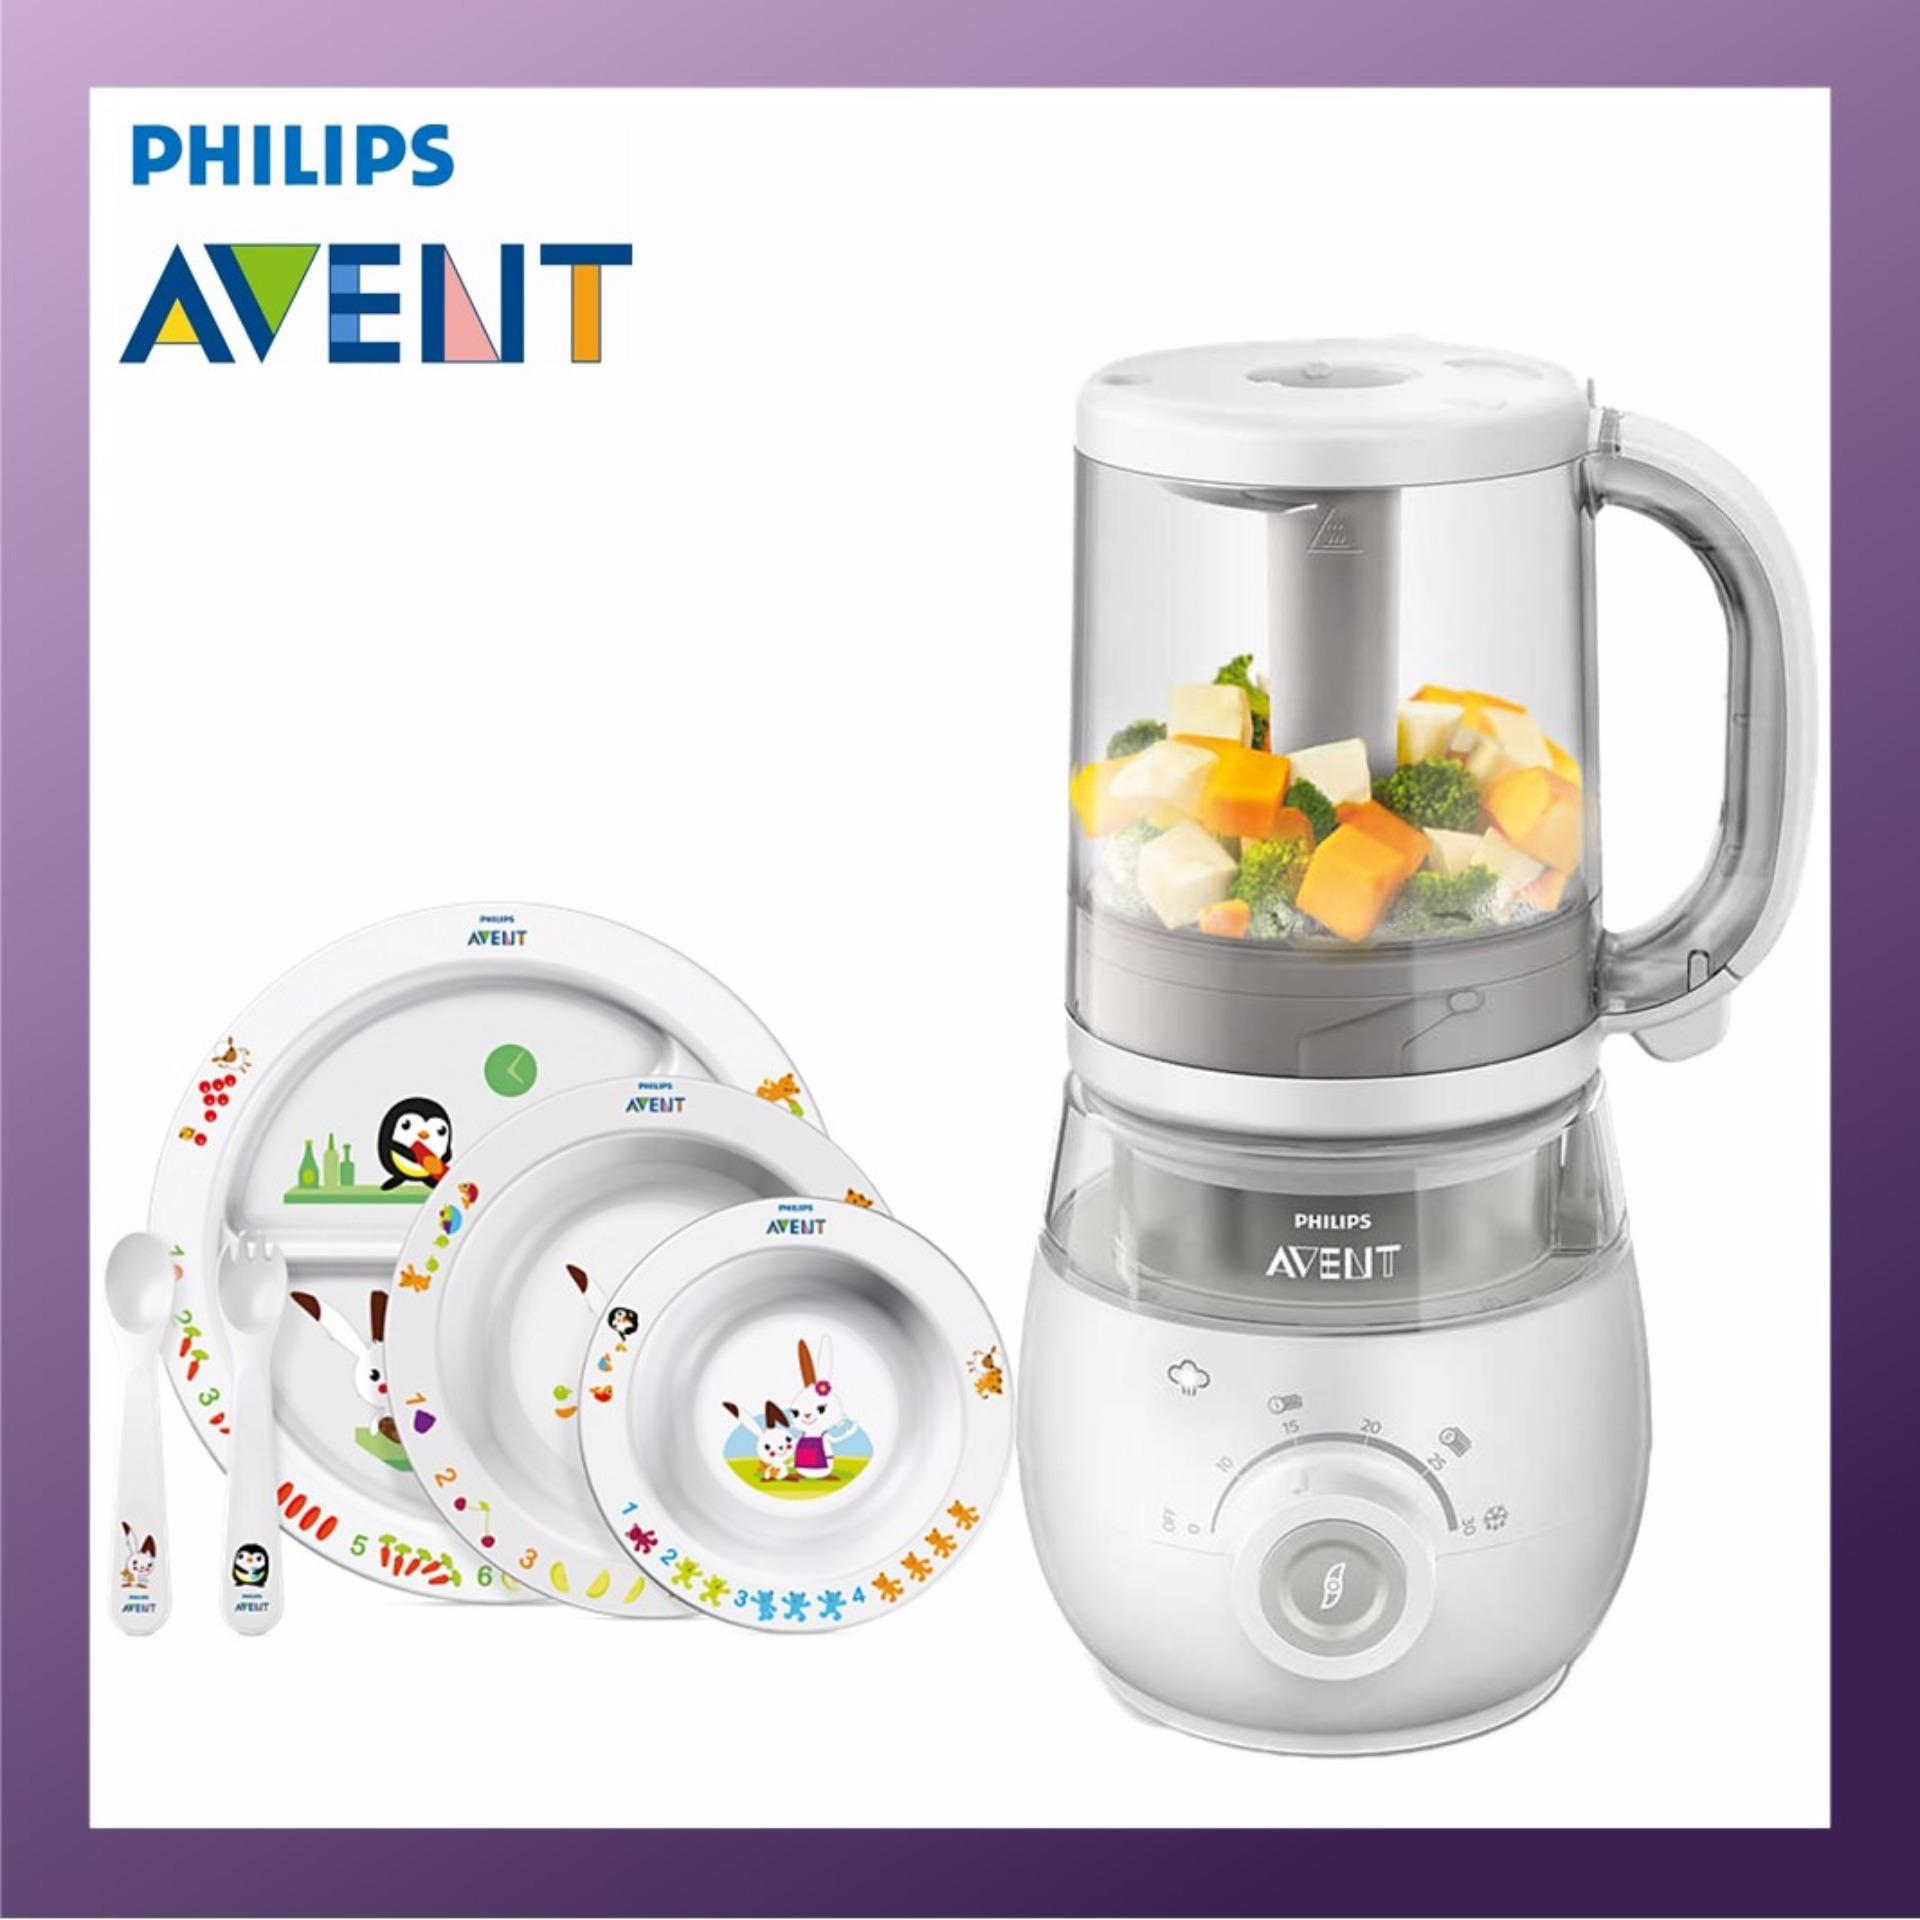 Price Comparison For Philips Avent 4 In 1 Healthy Baby Food Maker Basic Bundle